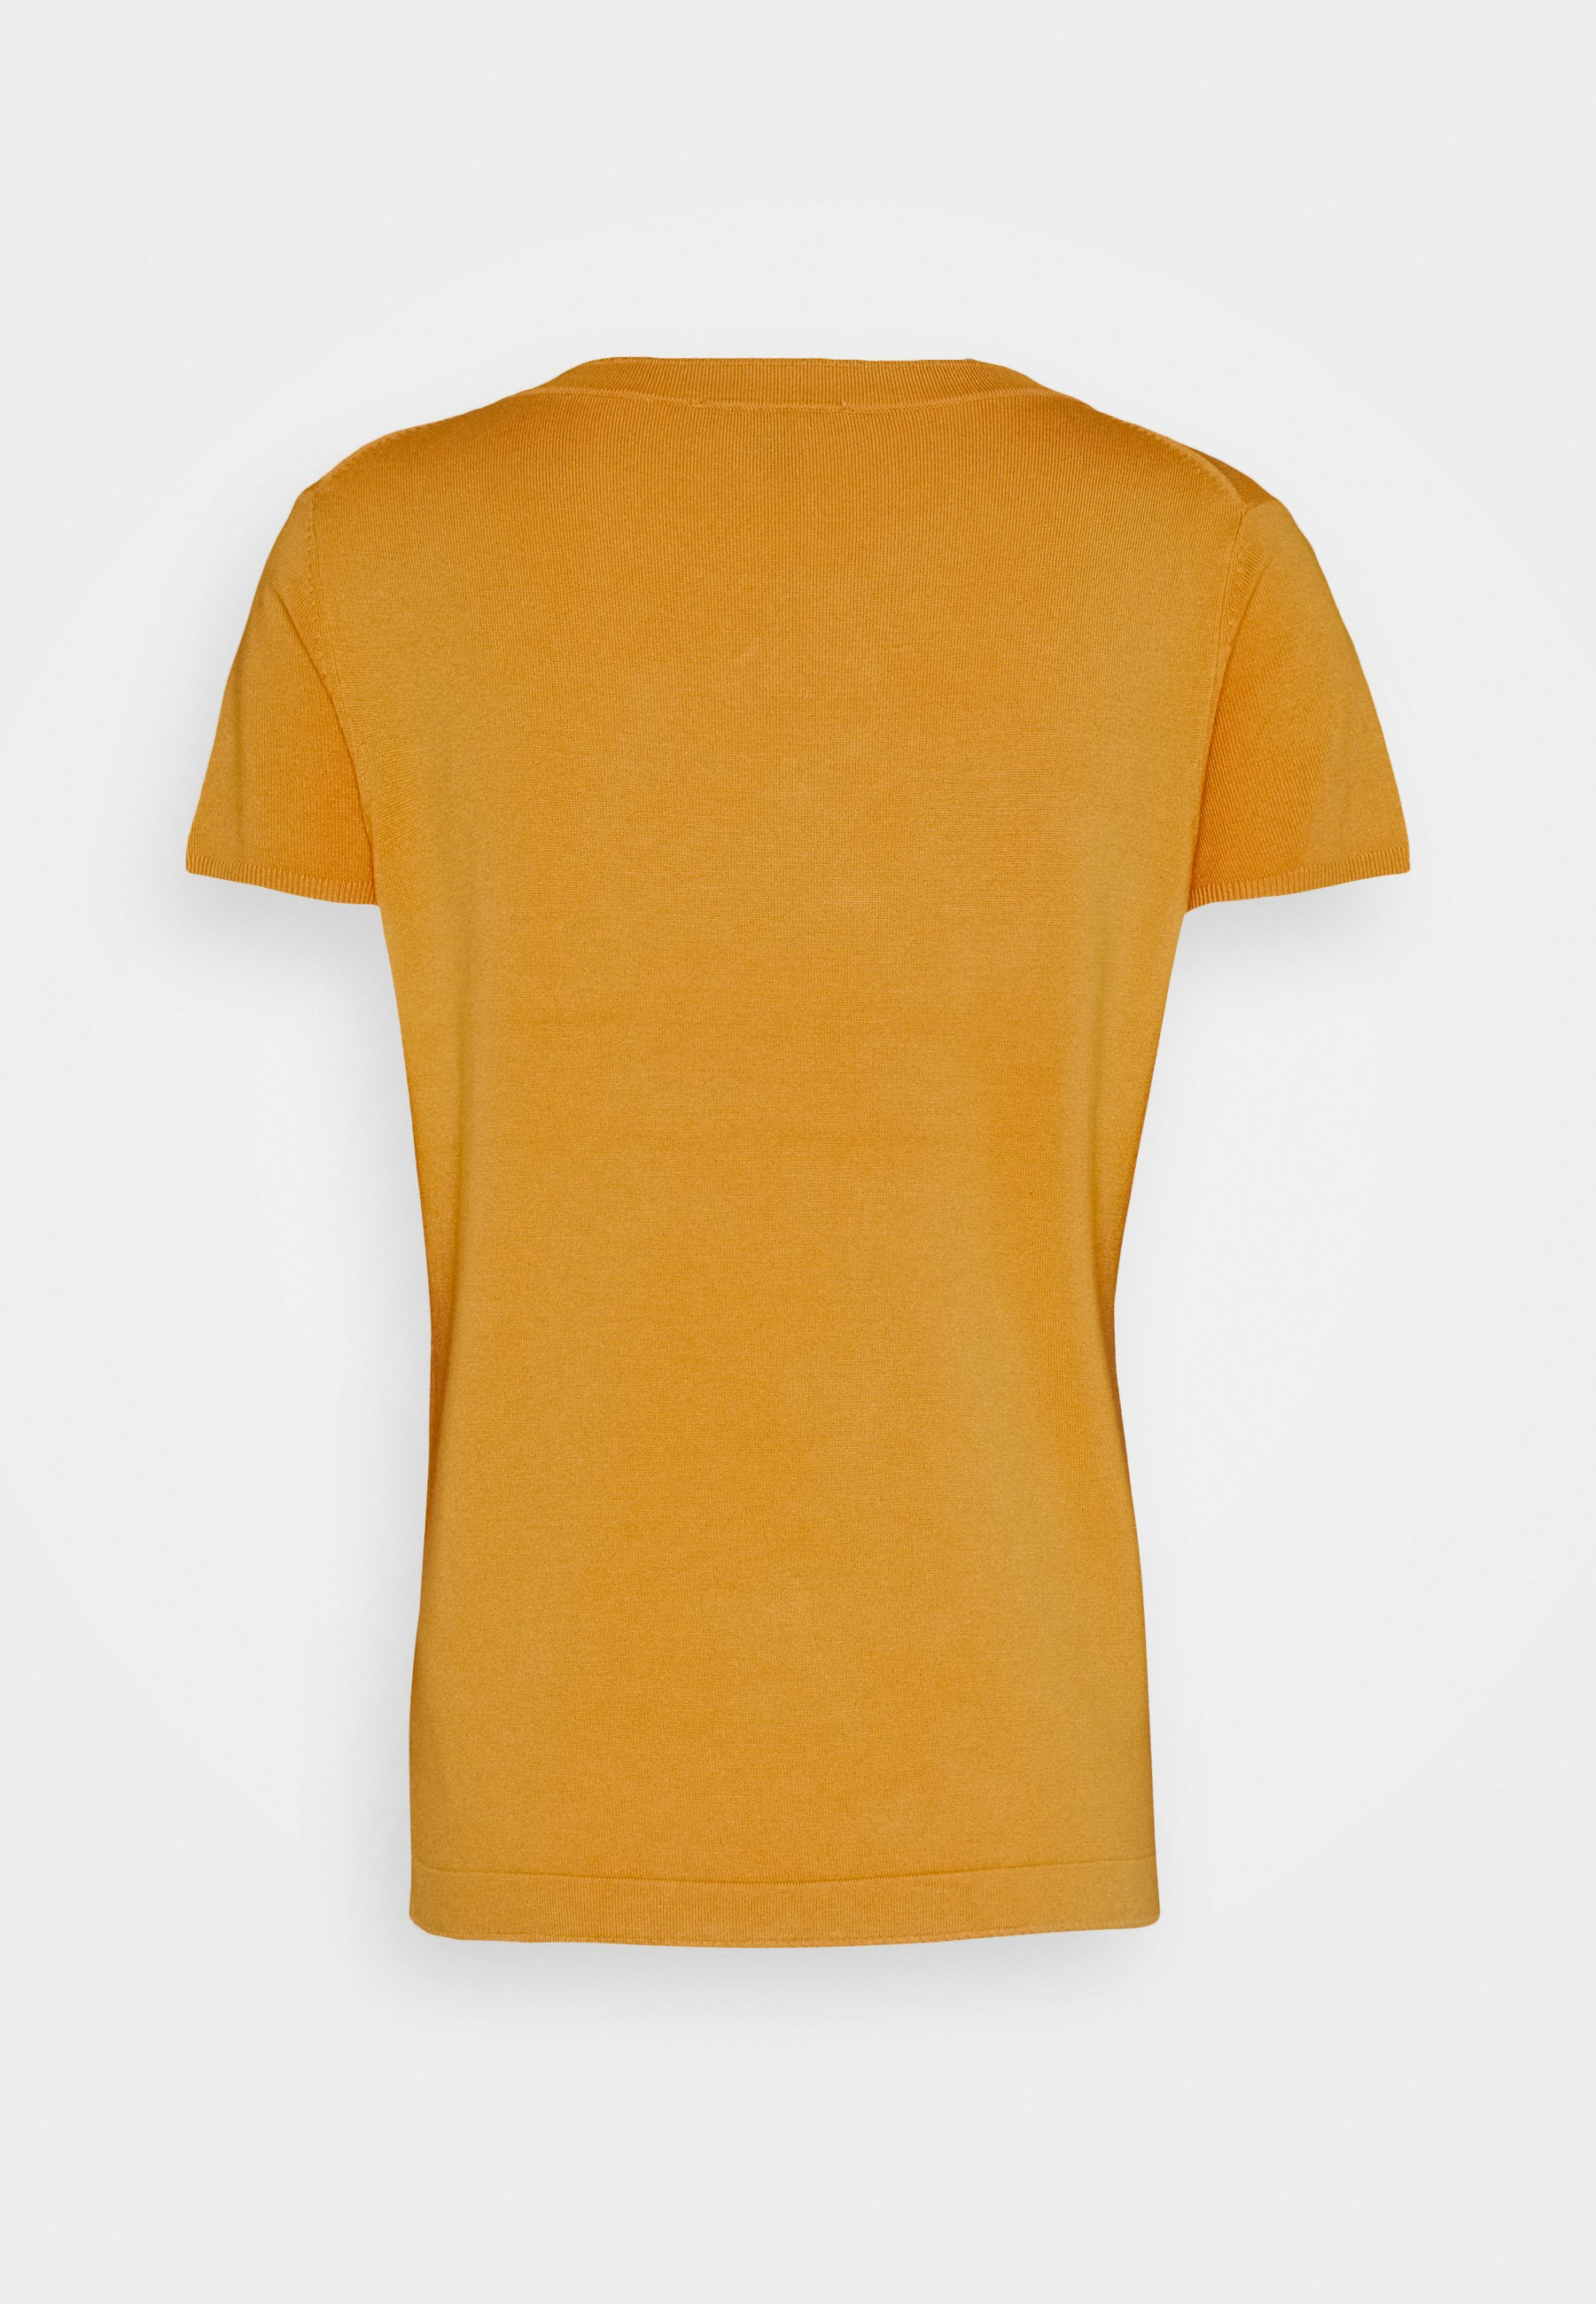 Esprit Collection Eco Vero - T-shirts Honey Yellow/mørkegul